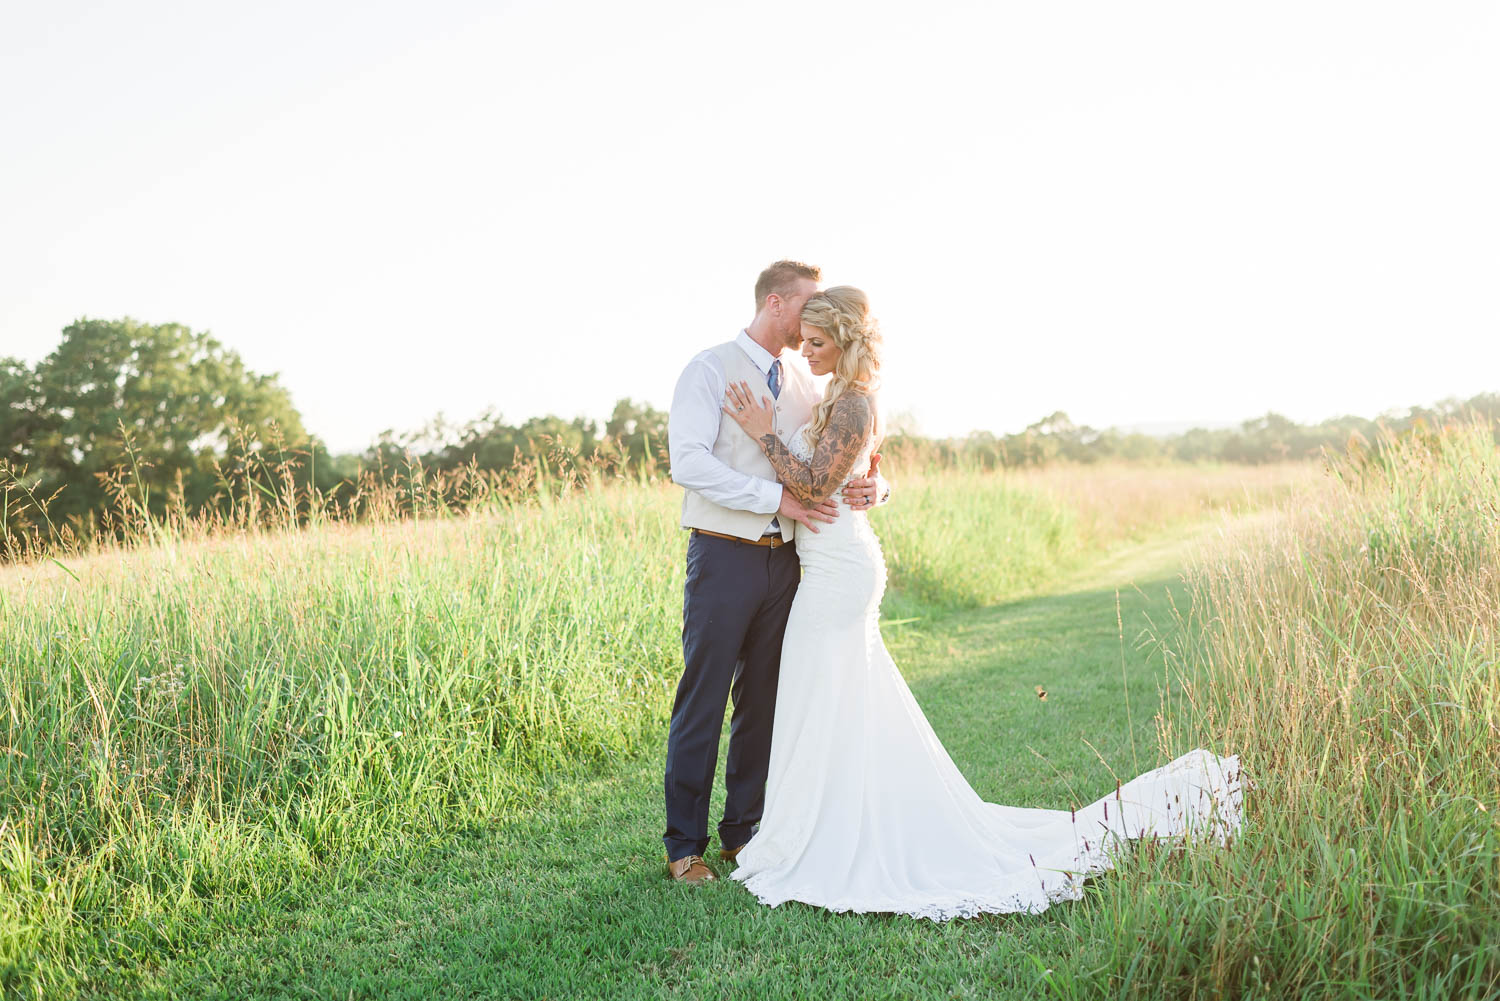 Bride and Groom out on a sundrenched field next to The barn at Drewia Hill wedding venue in Sale Creek TN